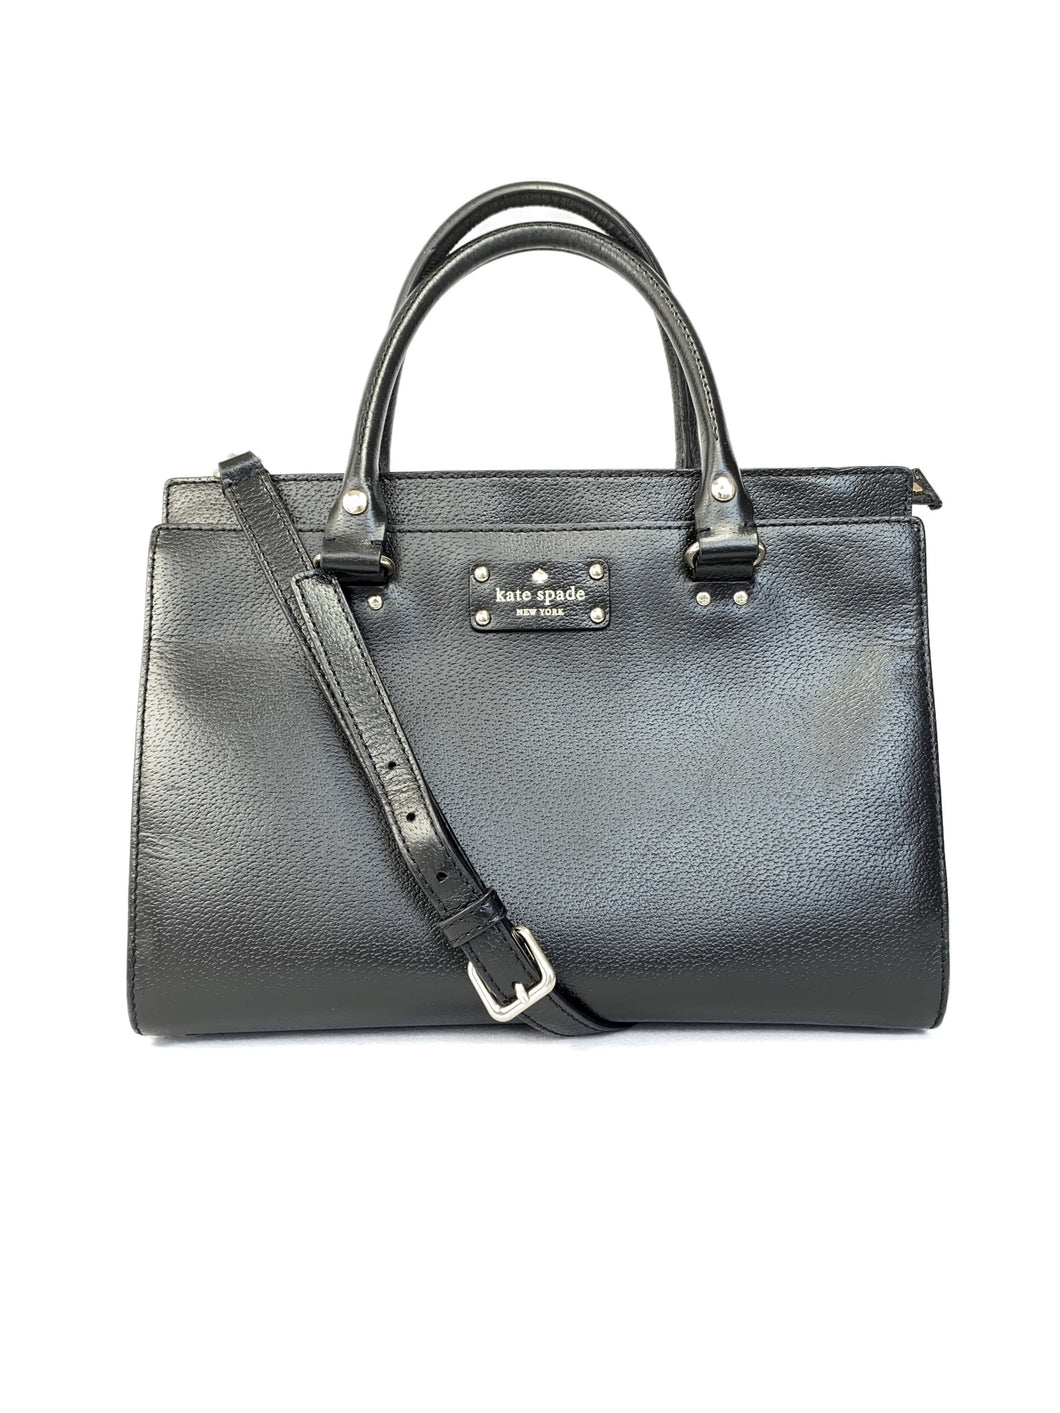 Kate Spade black convertible satchel - My Girlfriend's Wardrobe LLC